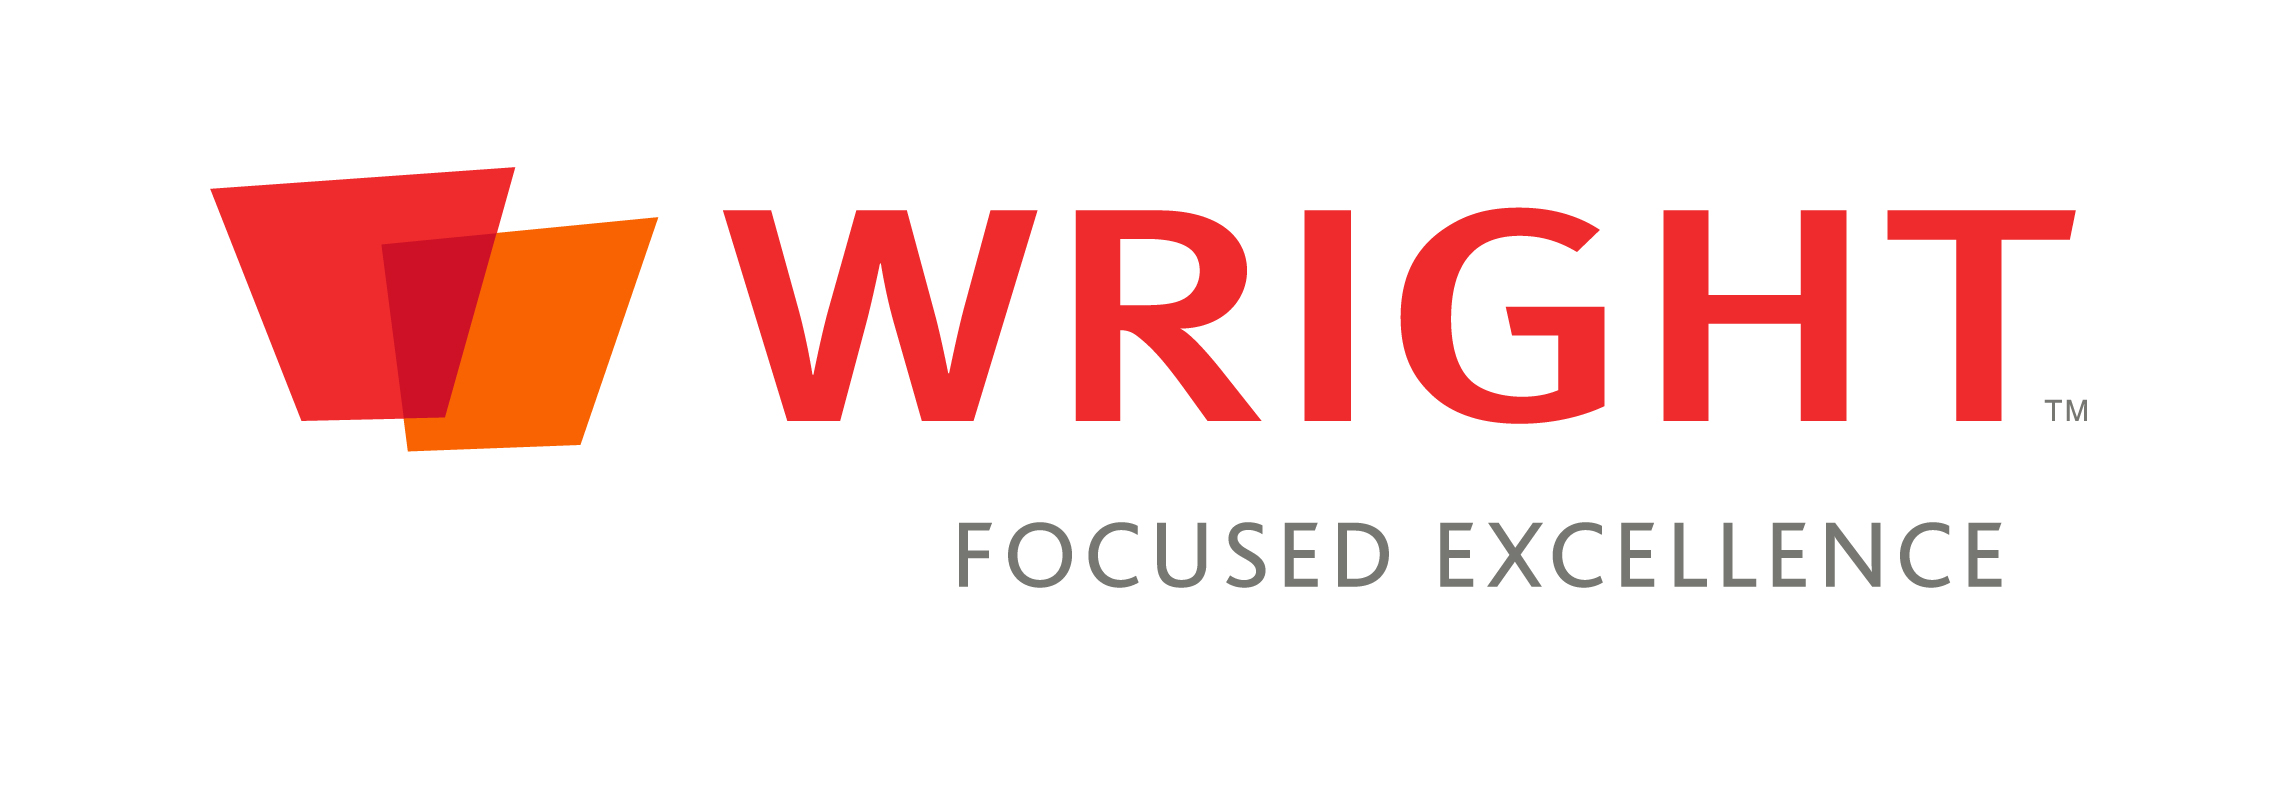 Wright-FE-RGB-WEBSAFE-hires.jpg